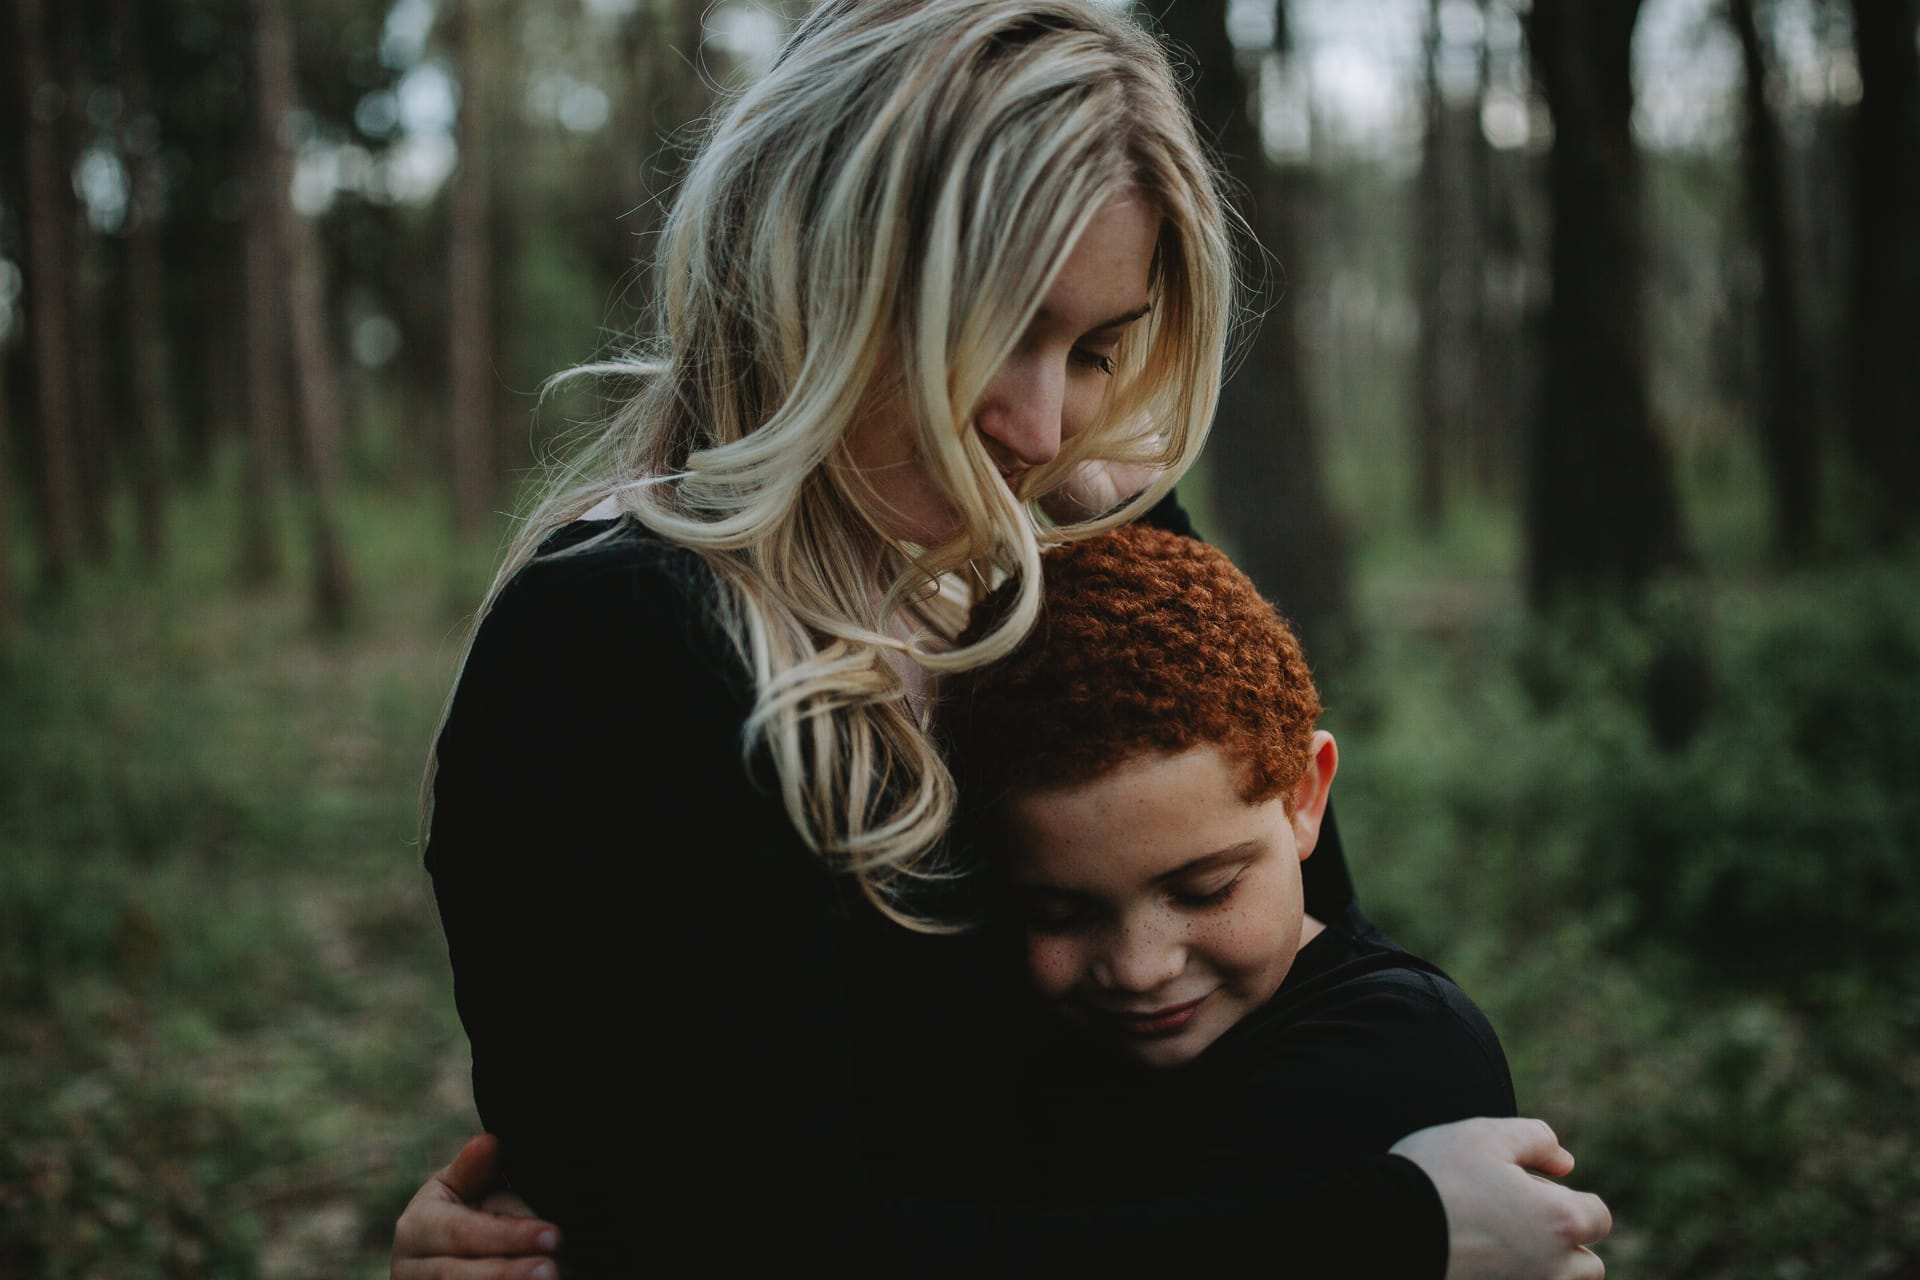 A mother and her son embrace in the forest at Anderson Farm County Park in Oregon, WI.